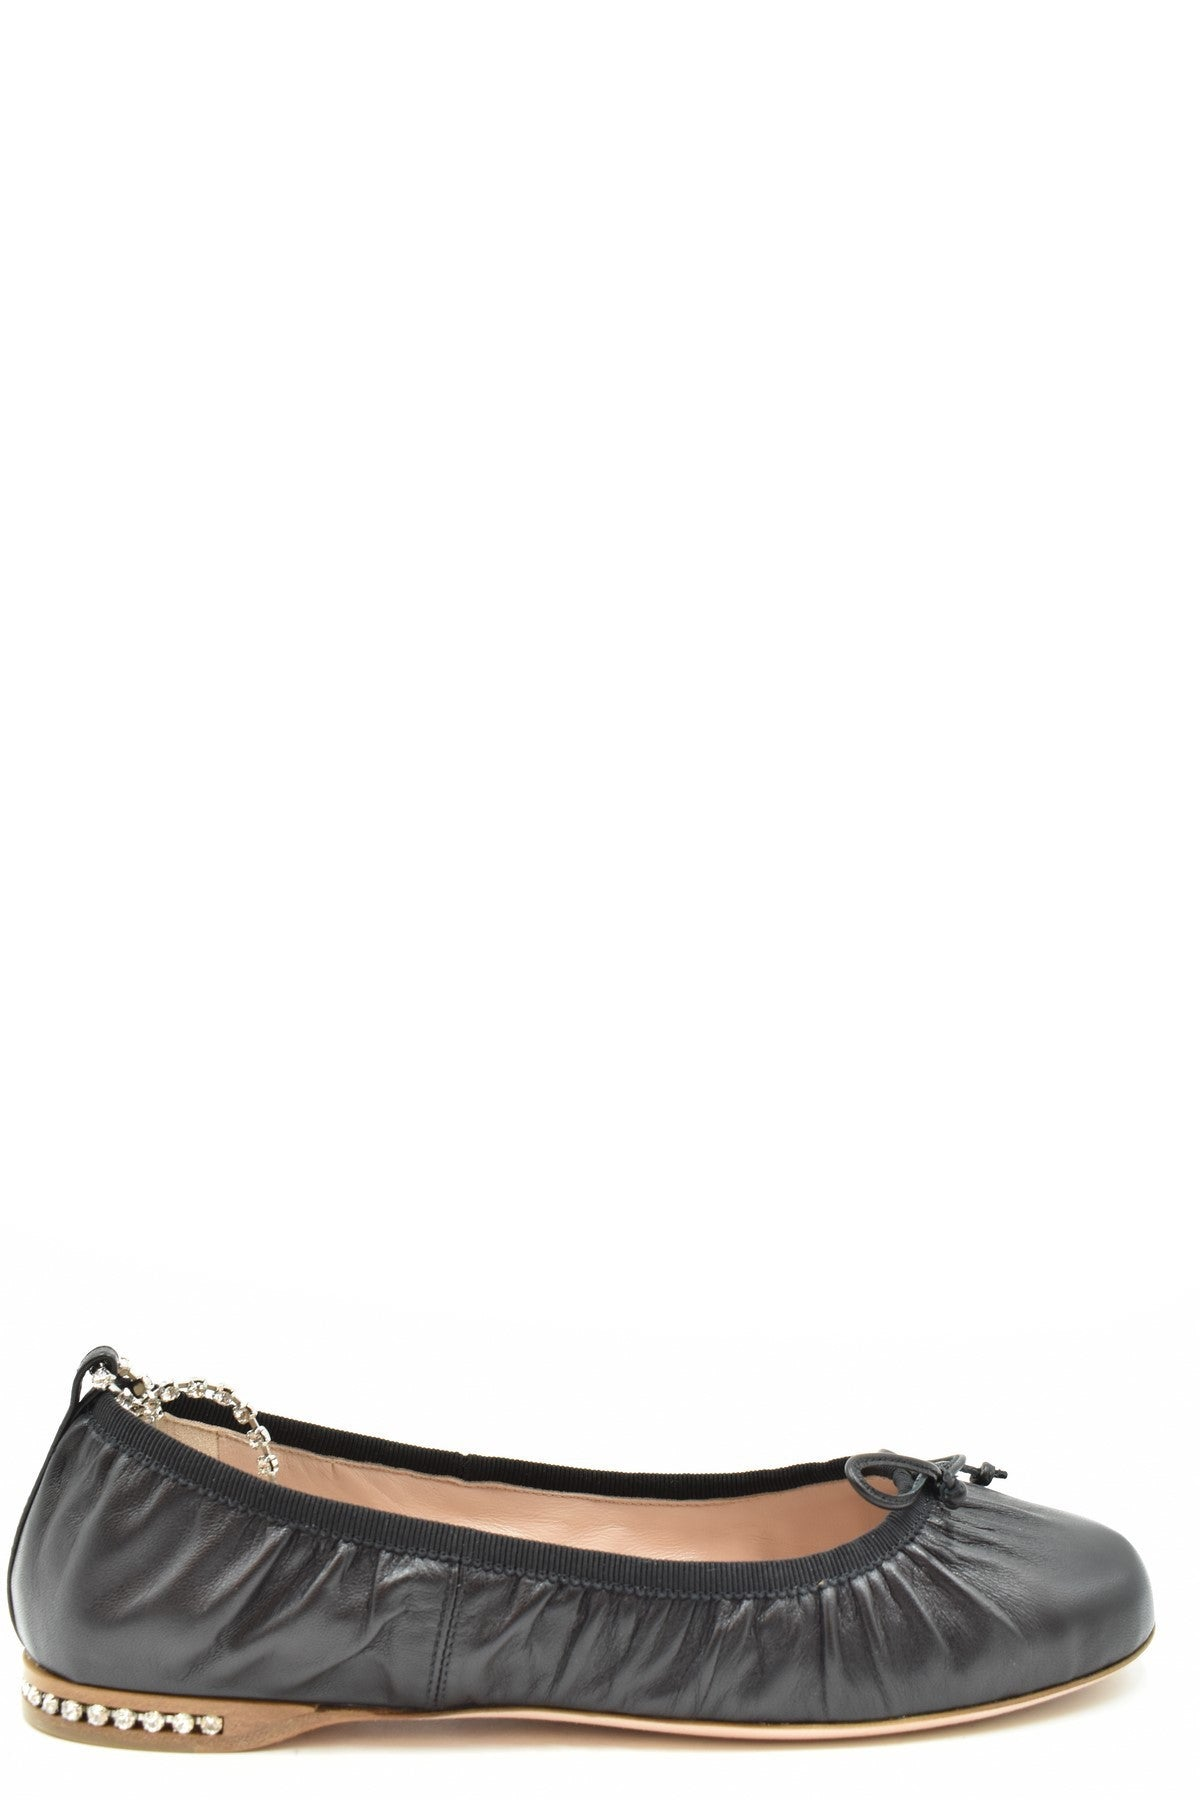 Shoes Miu Miu-Women's Fashion - Women's Shoes - Women's Flats-35.5-Product Details Manufacturer Part Number: 5F919C 0386Year: 2020Composition: Leather 100%Size: EuGender: WomanMade In: ItalySeason: Spring / SummerType Of Accessory: ShoesMain Color: BlackTerms: New With Label-Keyomi-Sook